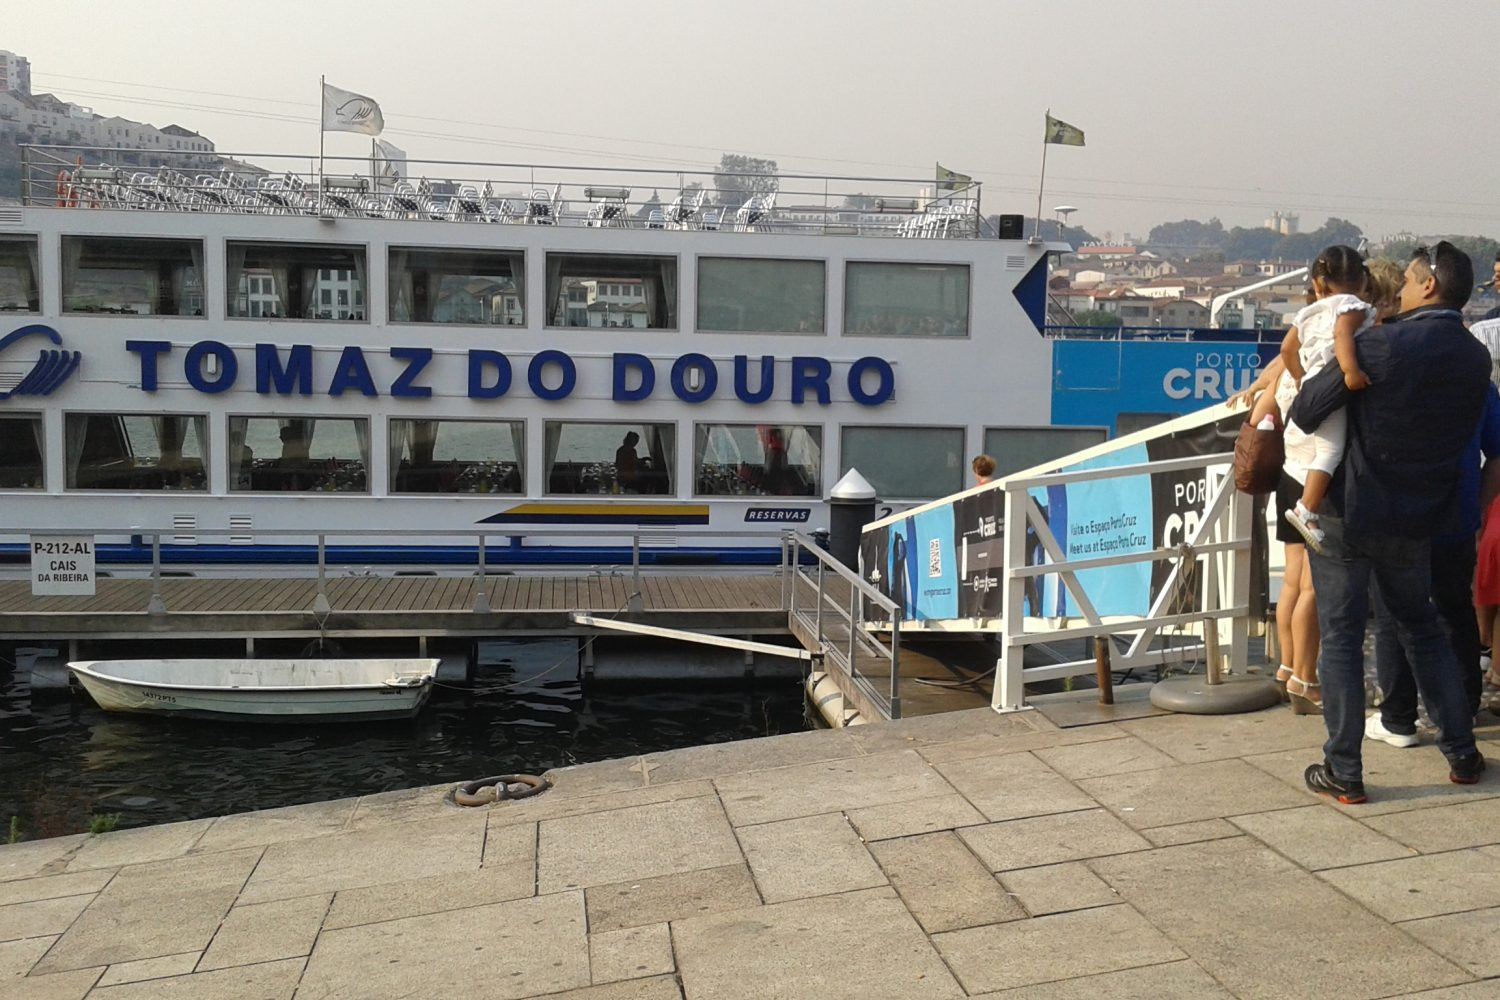 People taking place on the boat for a douro cruise - Cópia - Cópia